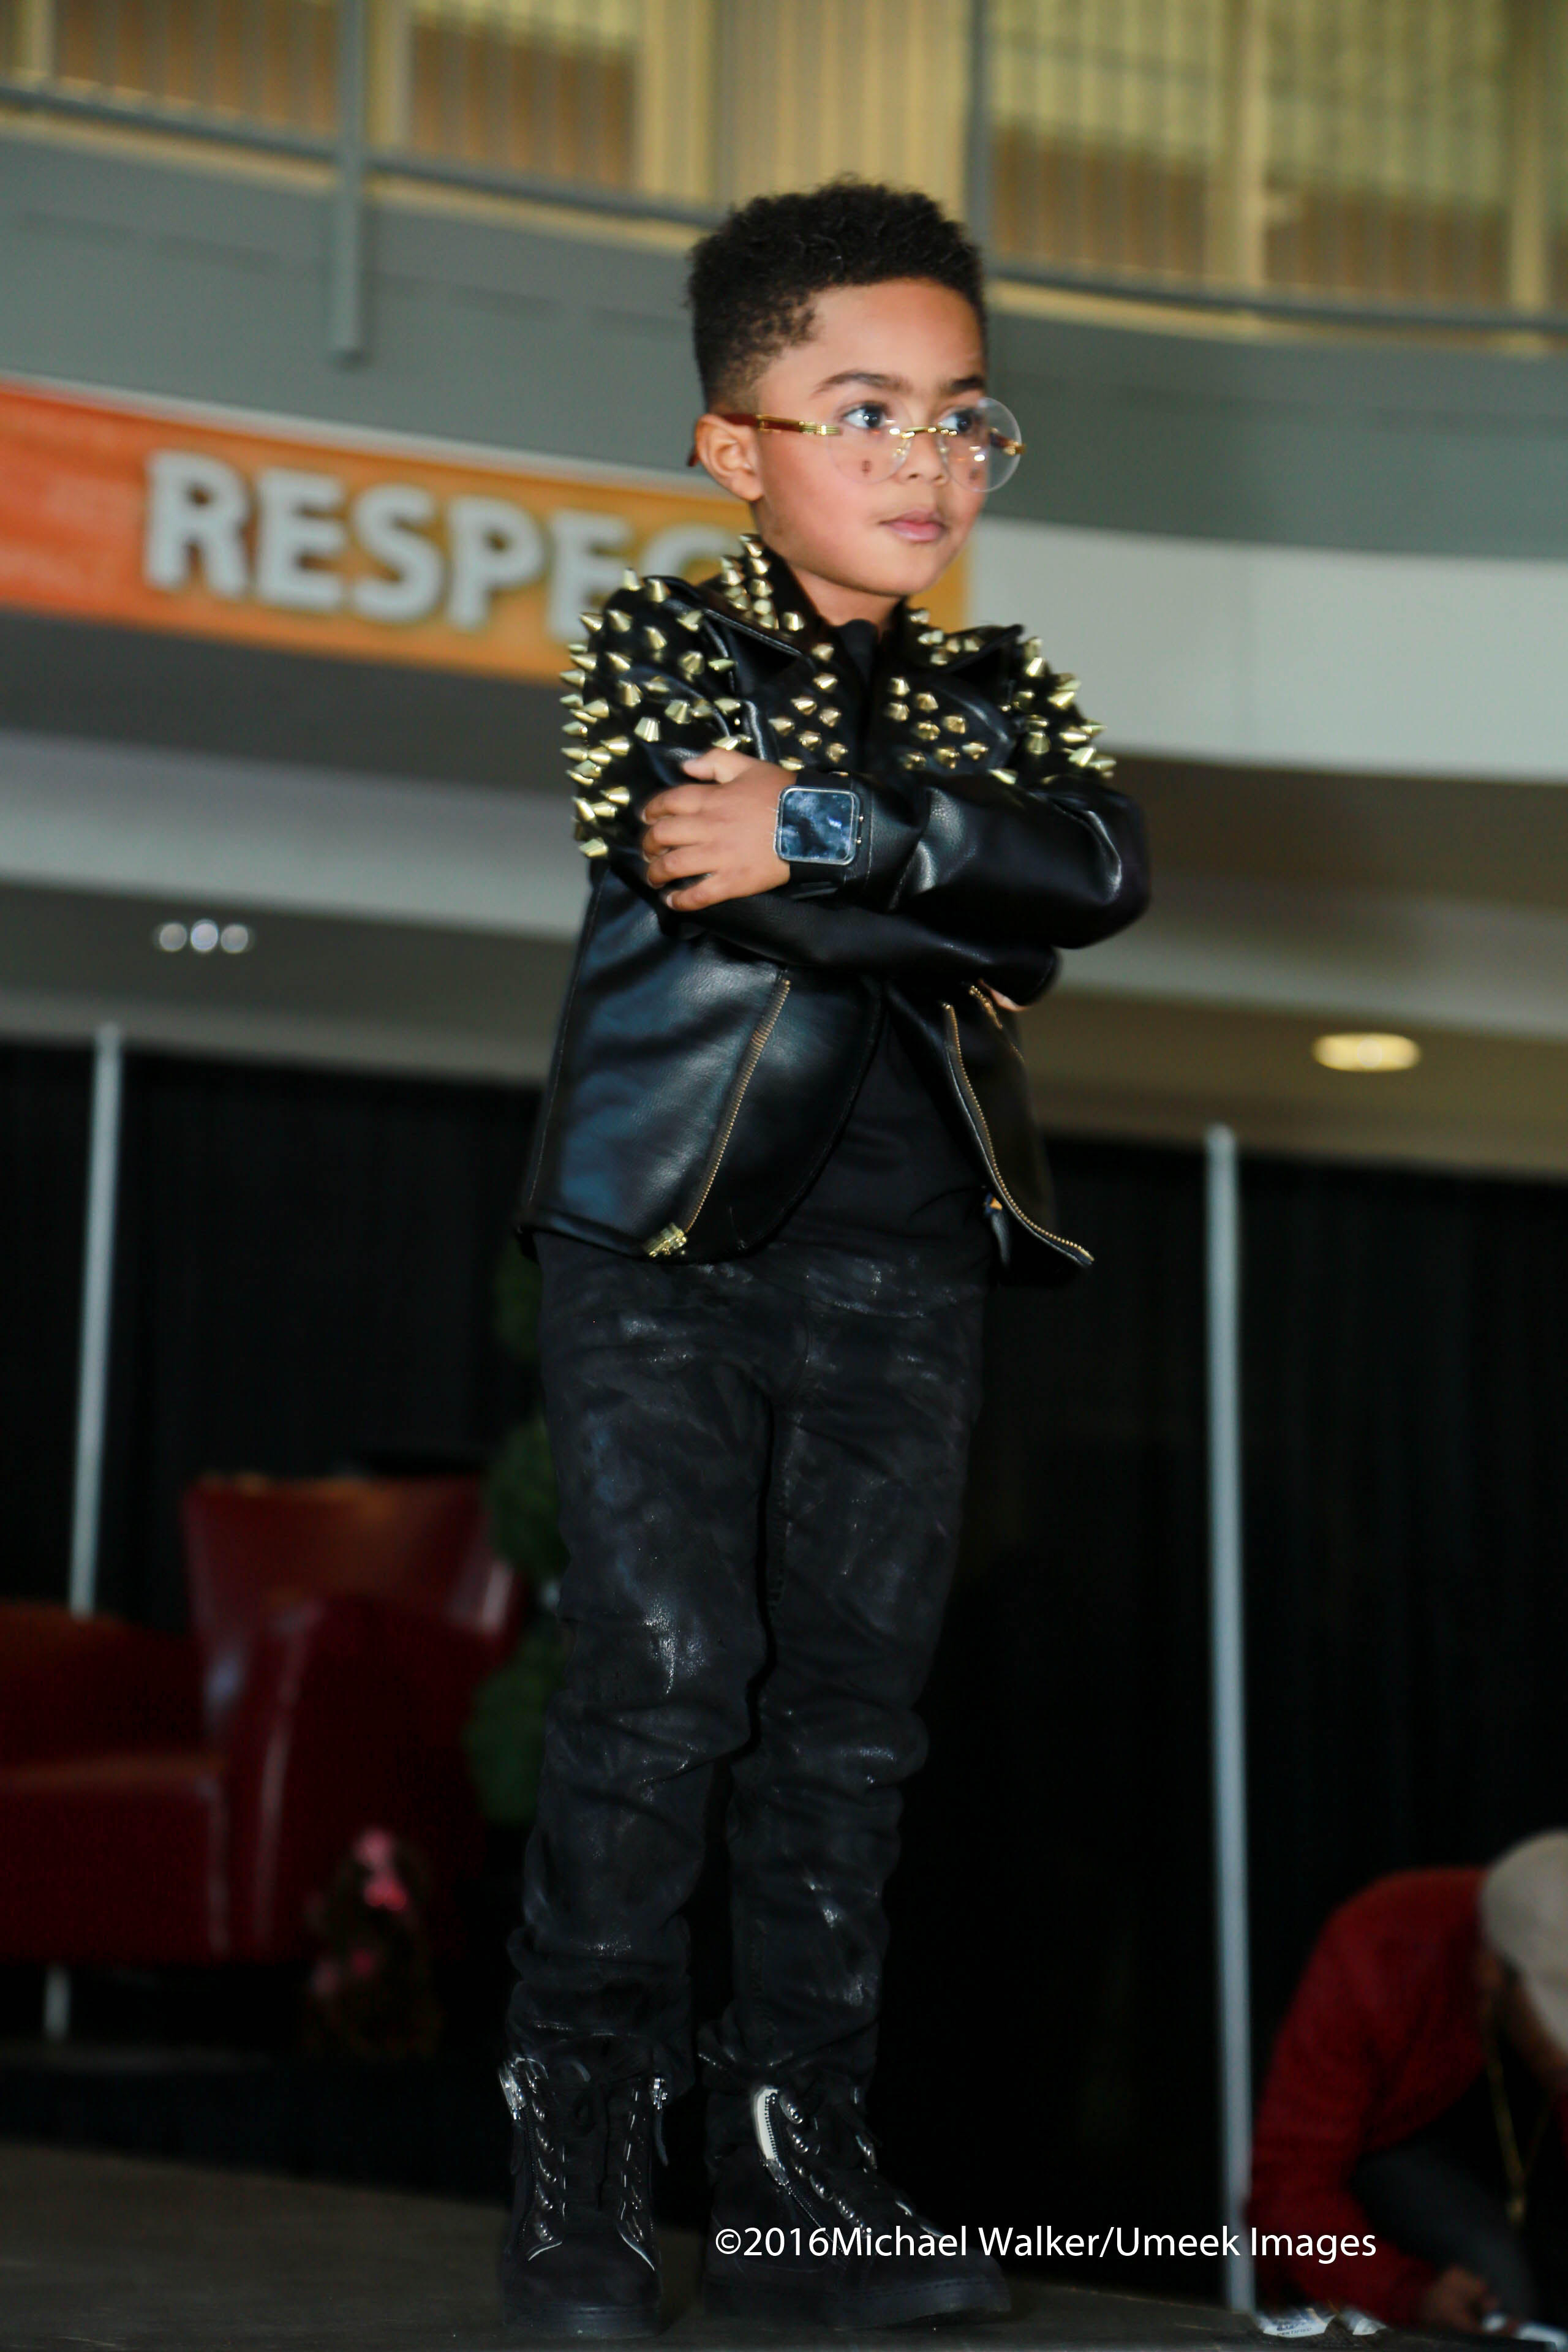 Derrick Rose's little son PJ  has a brand called Bullie's brand, which was featured on the runway.